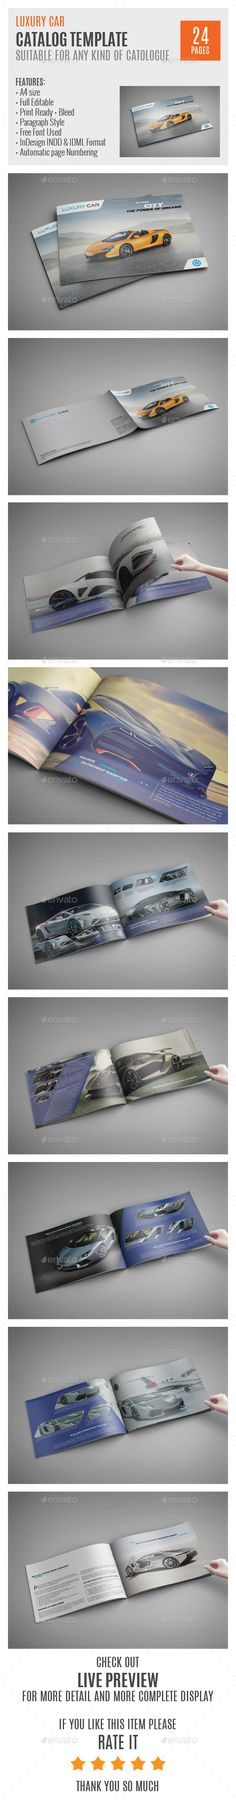 Rent A Car Brochure Templates Brochure template, Brochures and - auto detailing flyer template